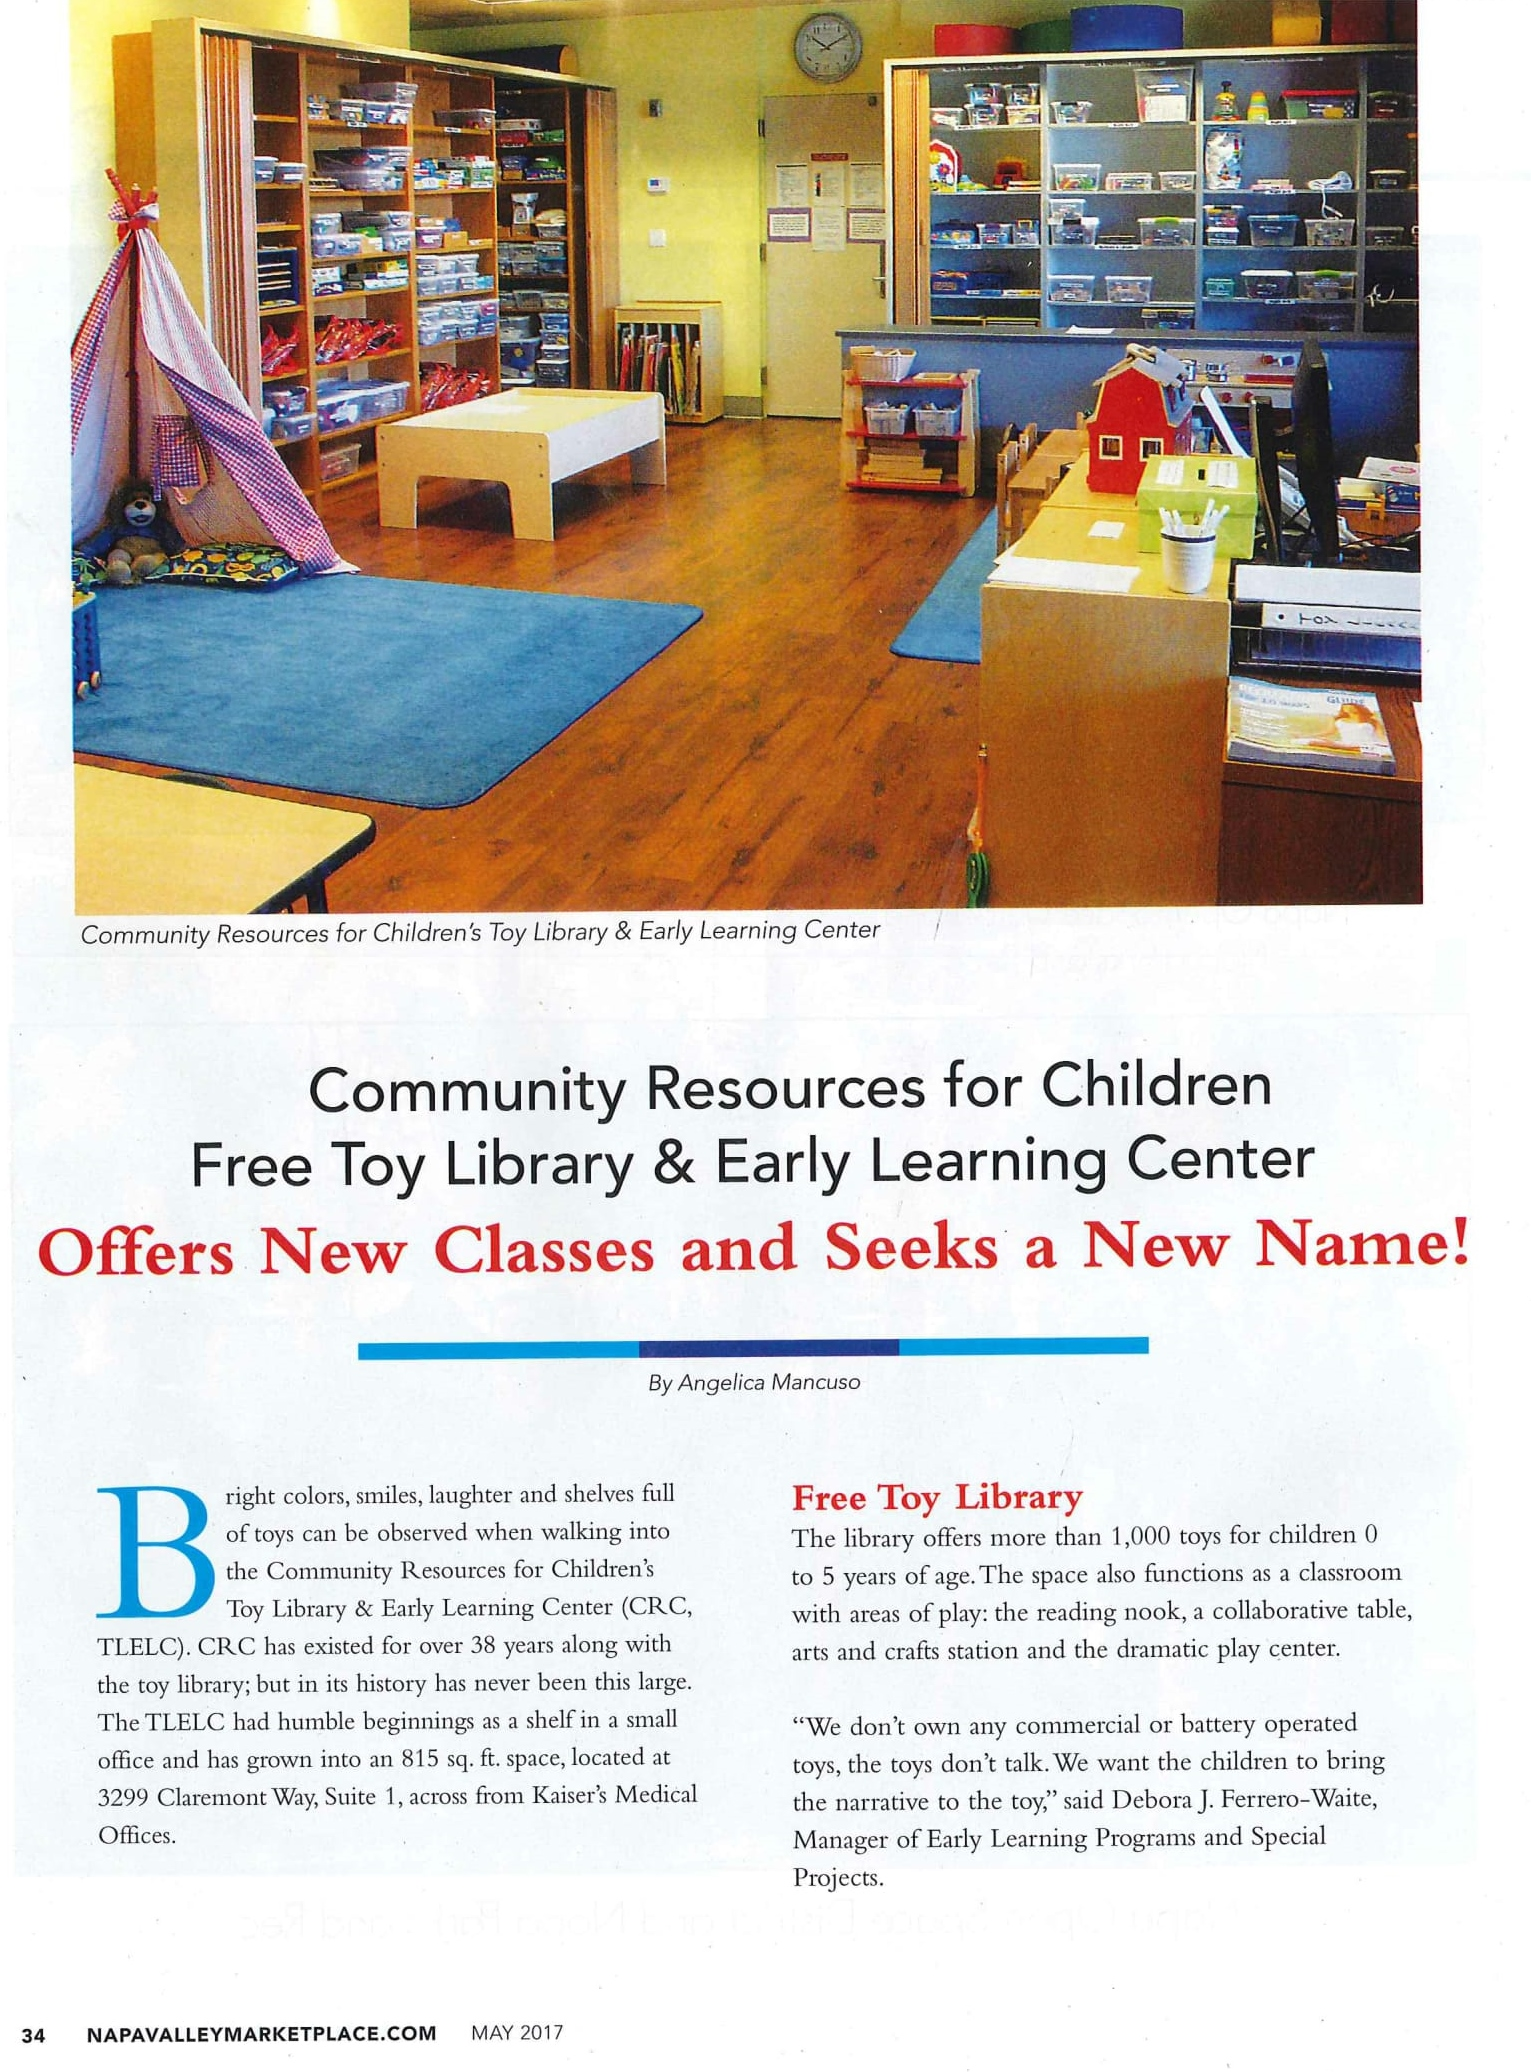 CRC in Marketplace Magazine